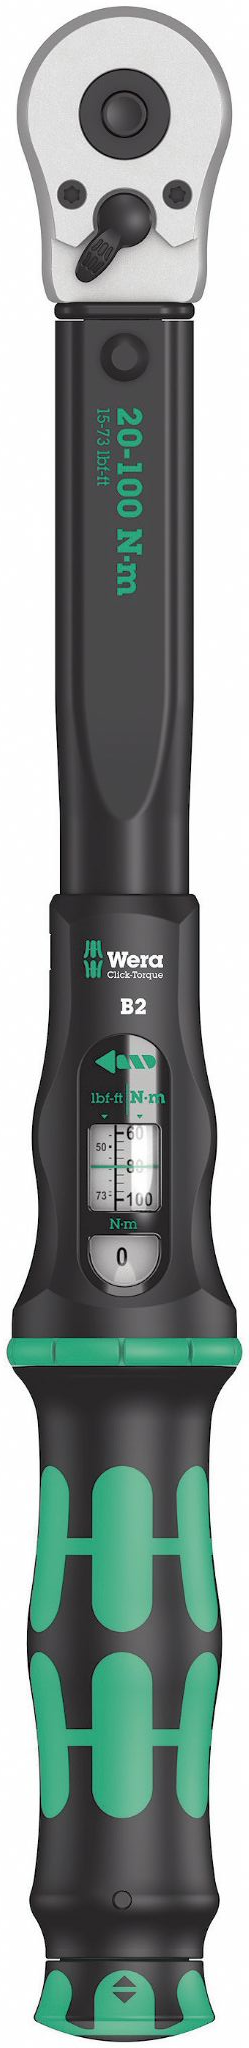 Wera 05075611001 Click-Torque B 2 Torque Wrench With Reversible Ratchet